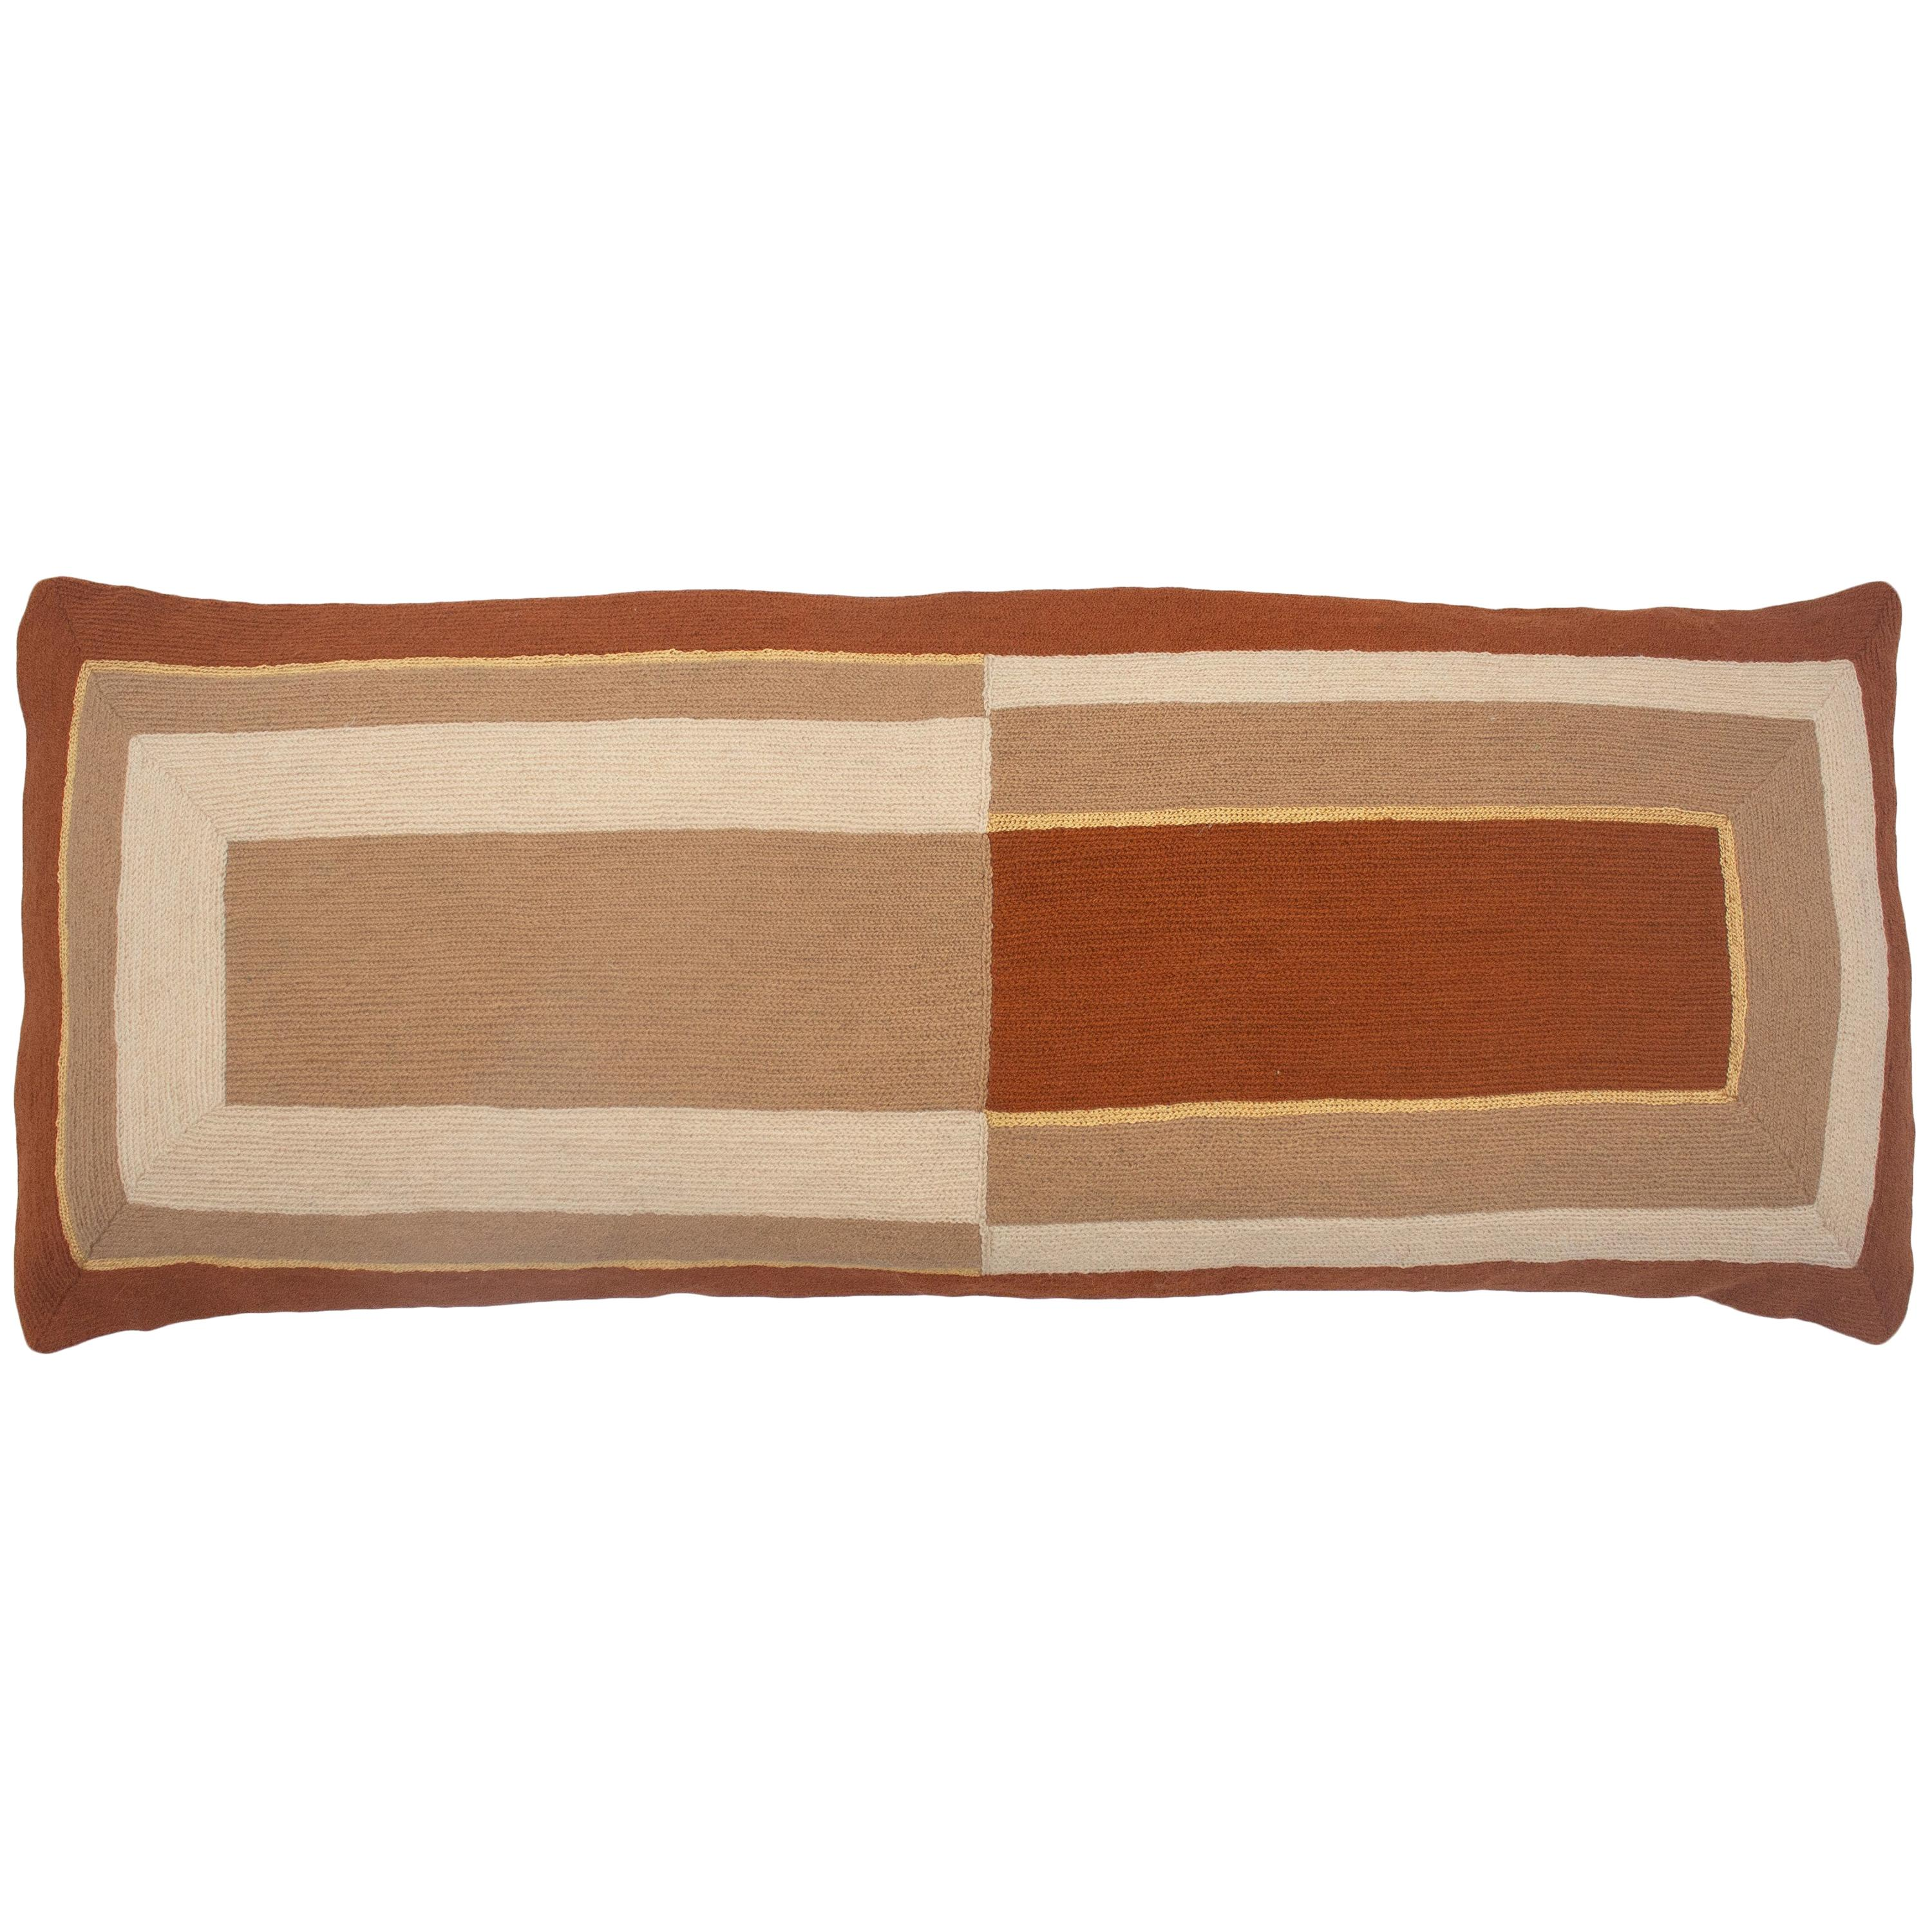 Marianne Rectangle Ochre Hand Embroidered Modern Geometric Throw Pillow Cover